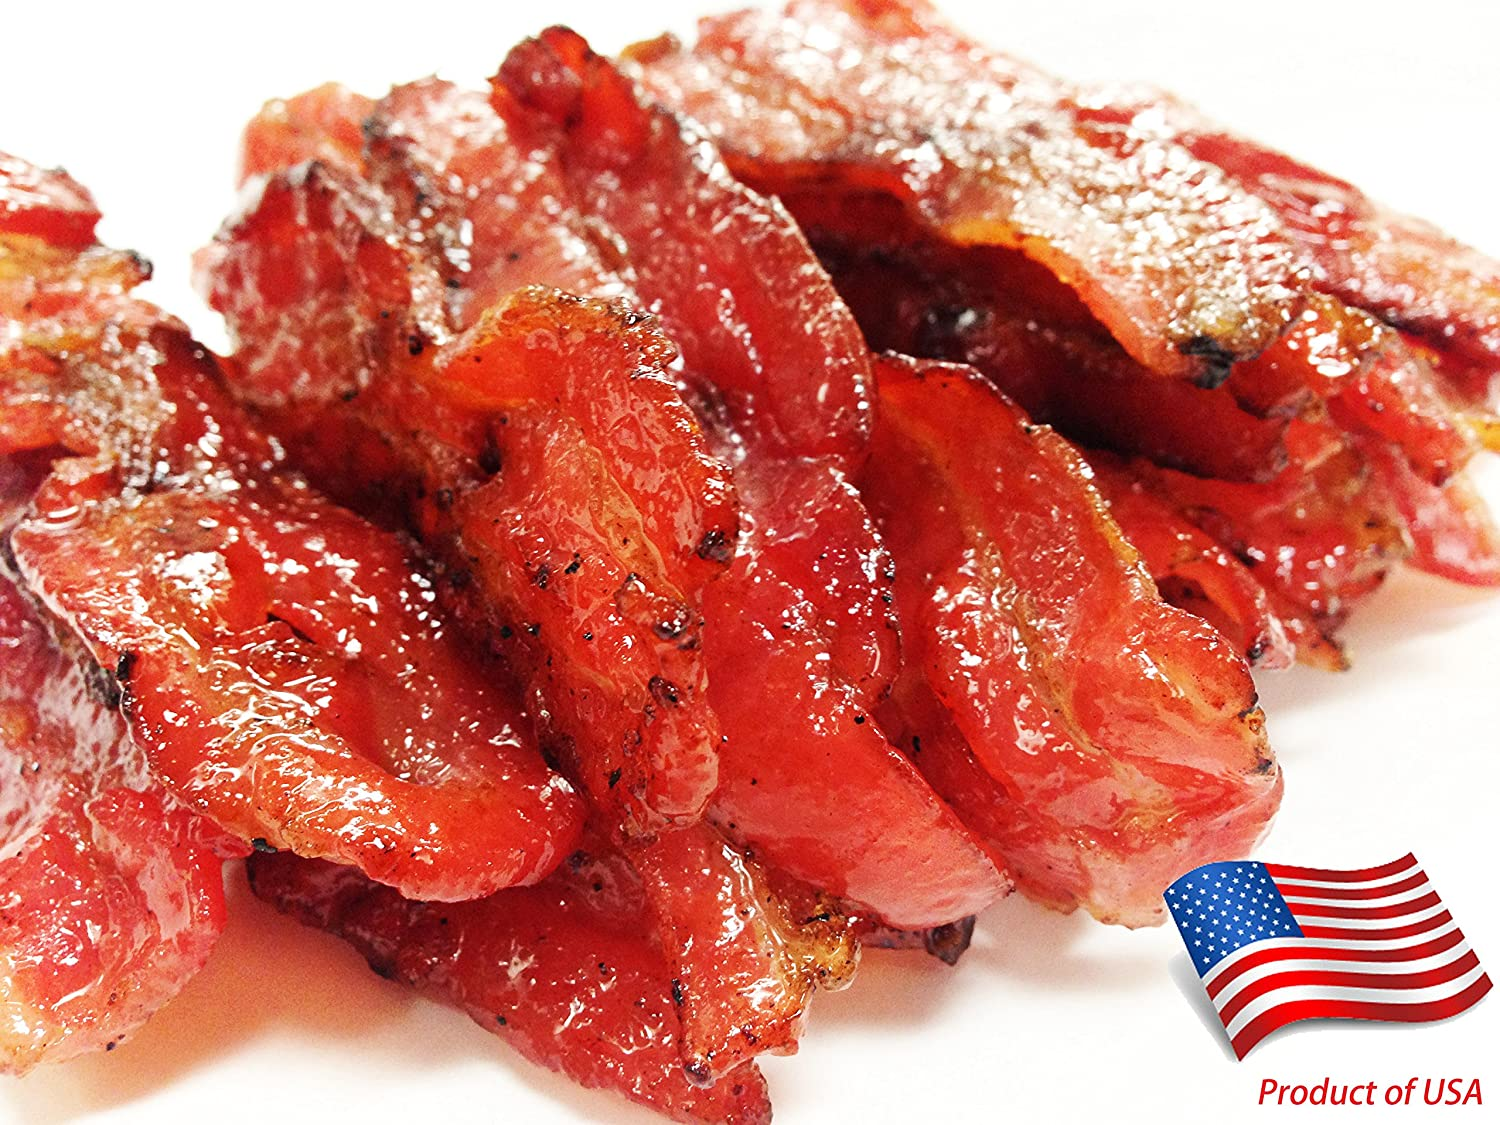 "Made to Order Fire-Grilled Oriental Bacon Jerky (Original Flavor - 4 Ounce) aka Singapore Bak Kwa - Los Angeles Times ""Handmade Gift"" Winner"